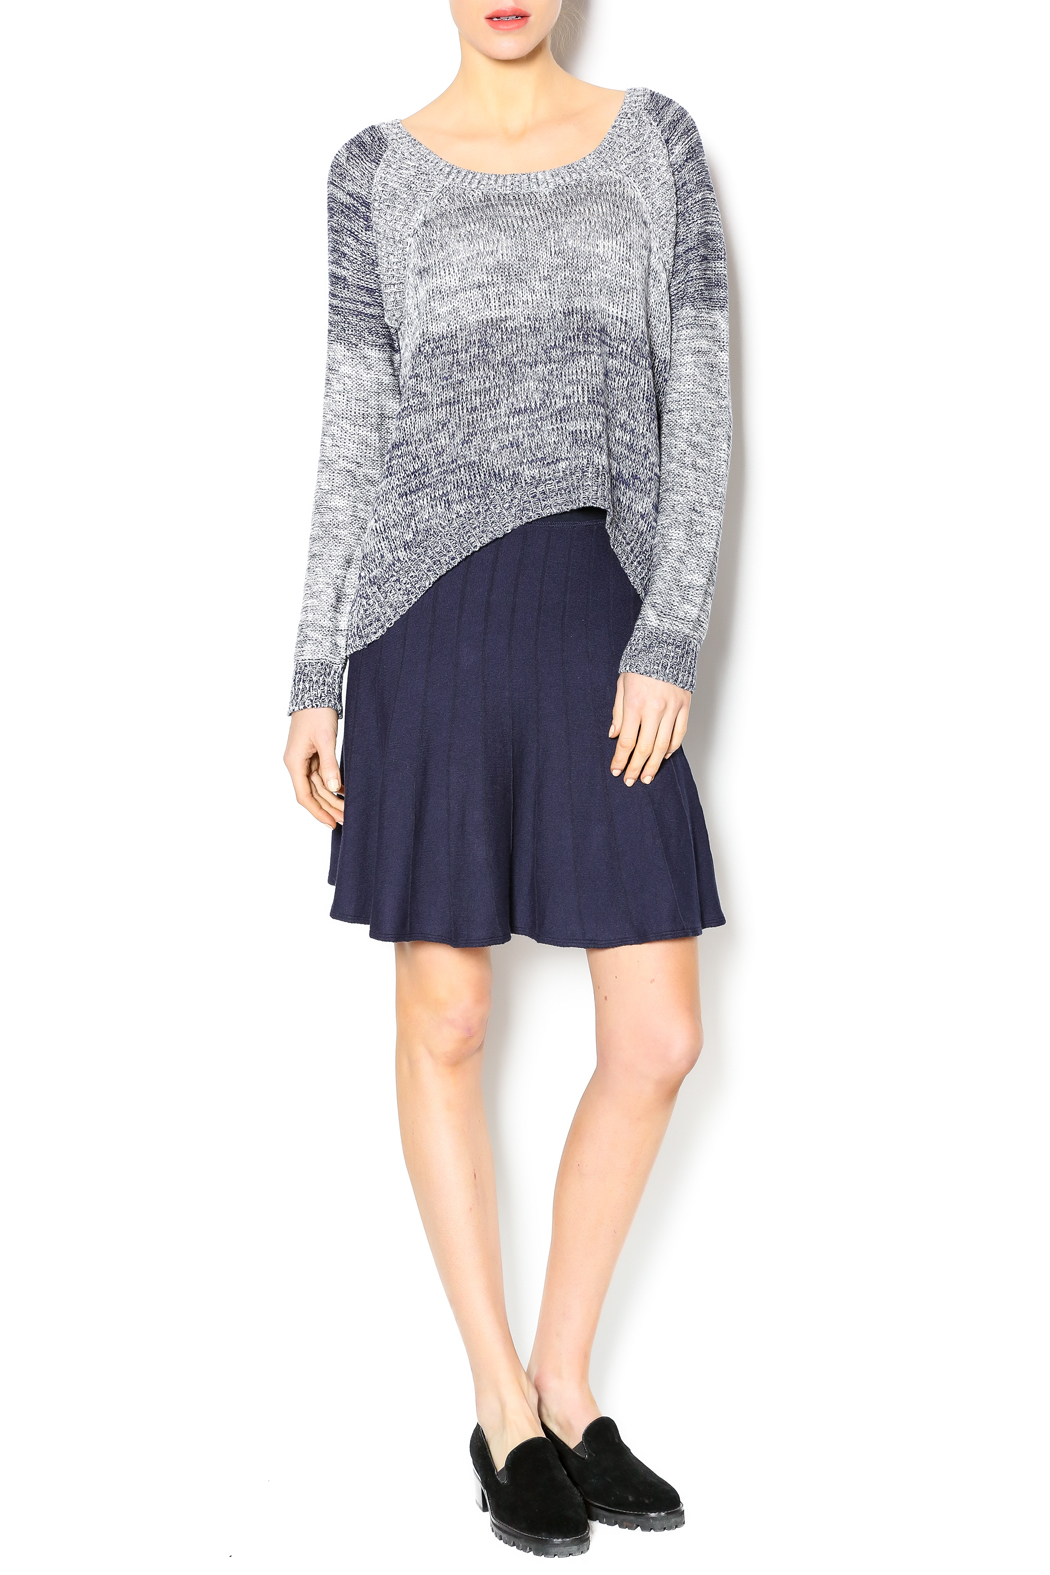 m rena pleated flare skirt from massachusetts by it s all